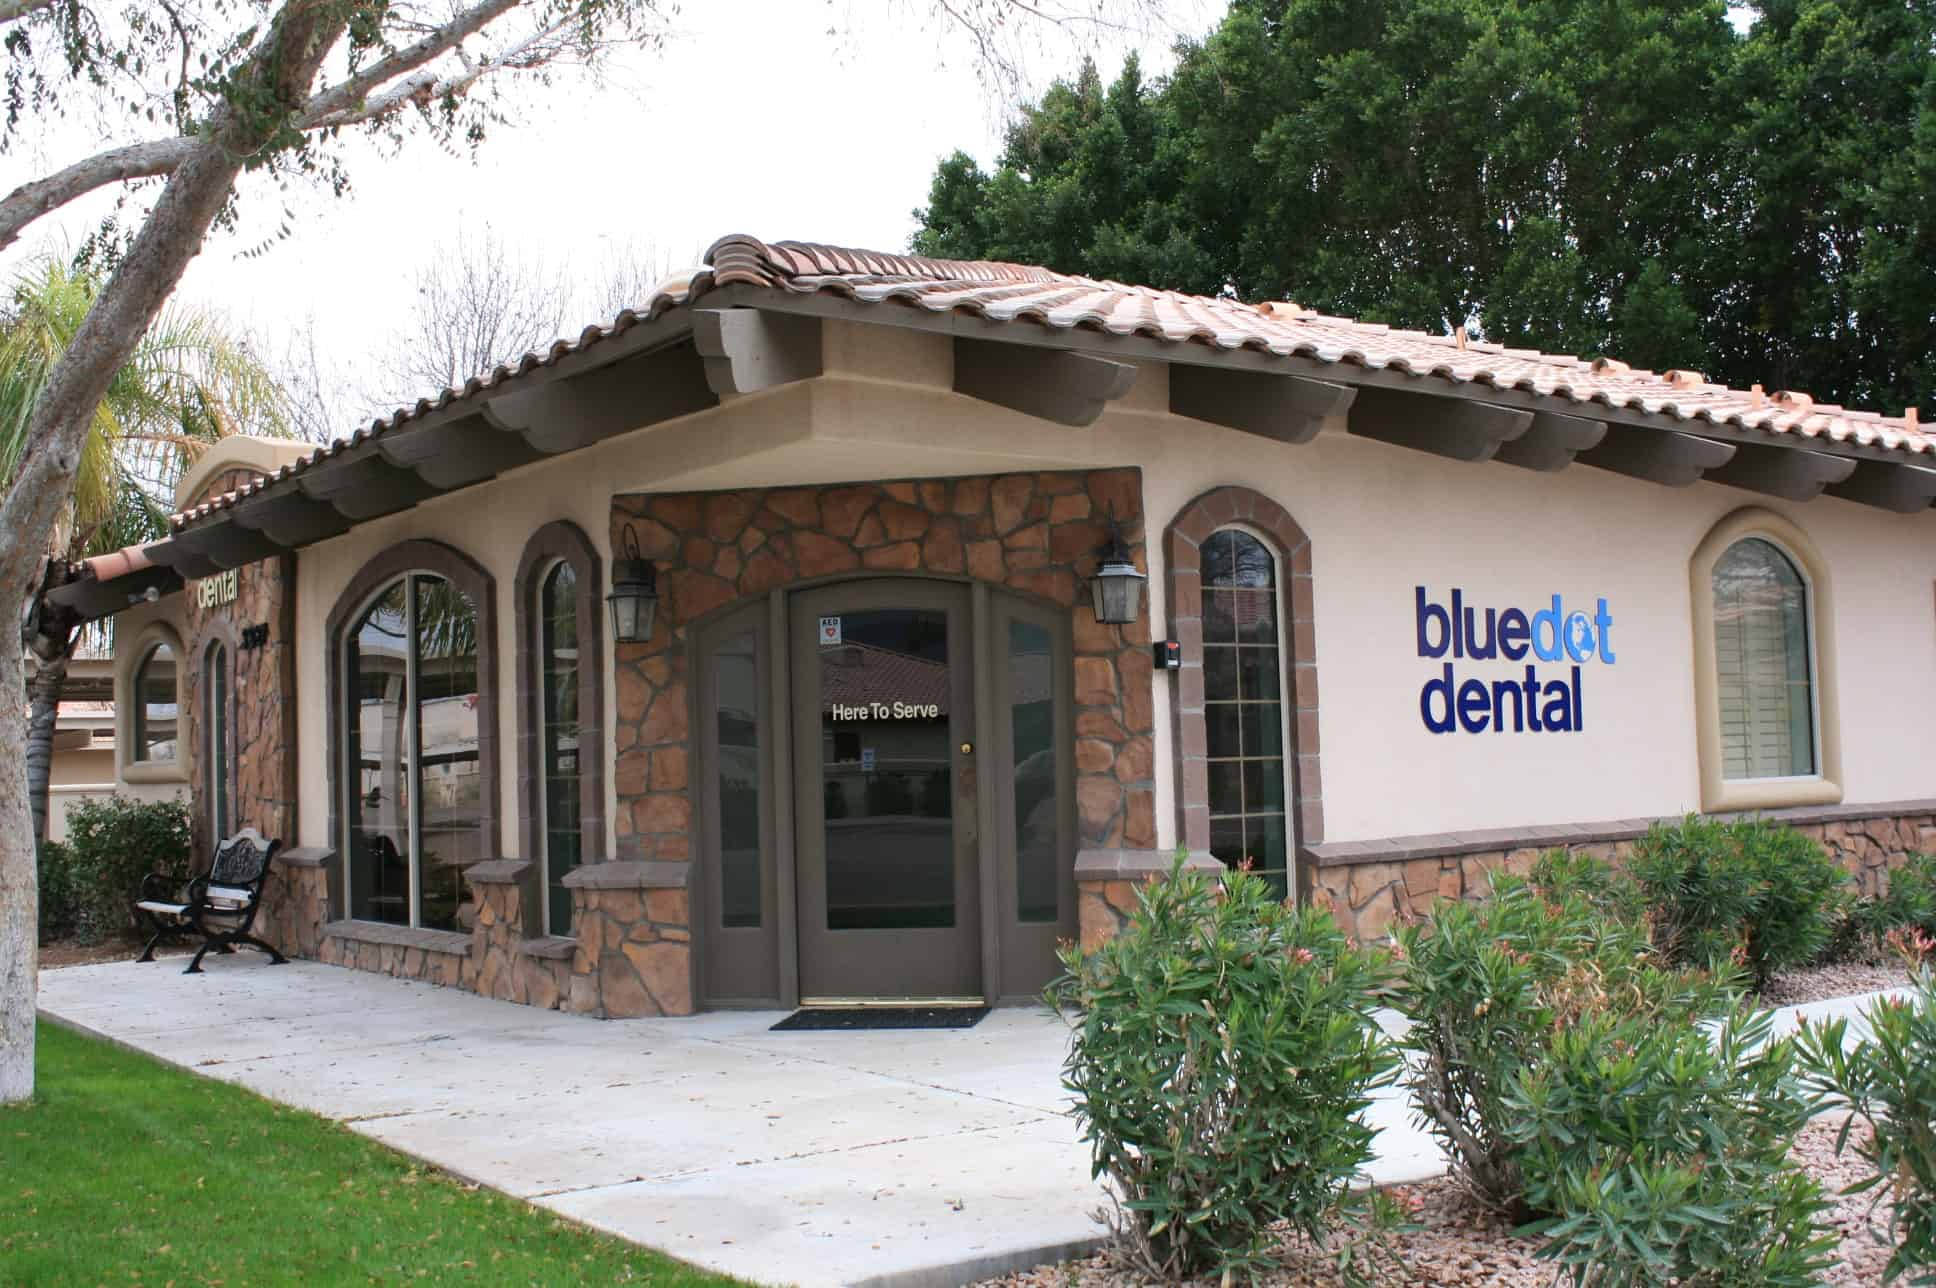 BlueDot Dental office front door